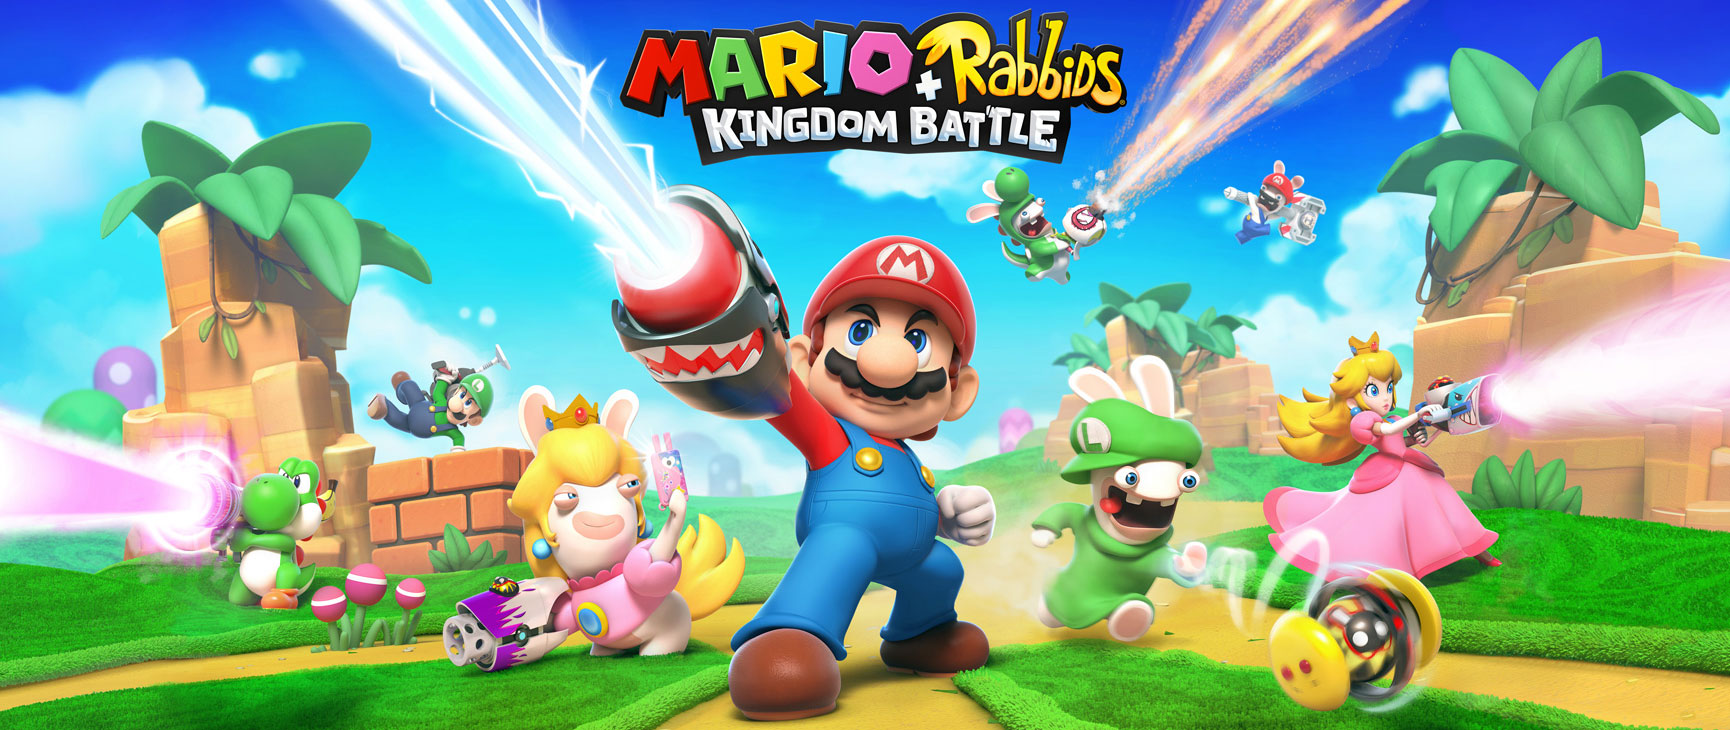 Photo of Mario + Rabbids Kingdom Battle, Nintendo+Ubisoft análisis